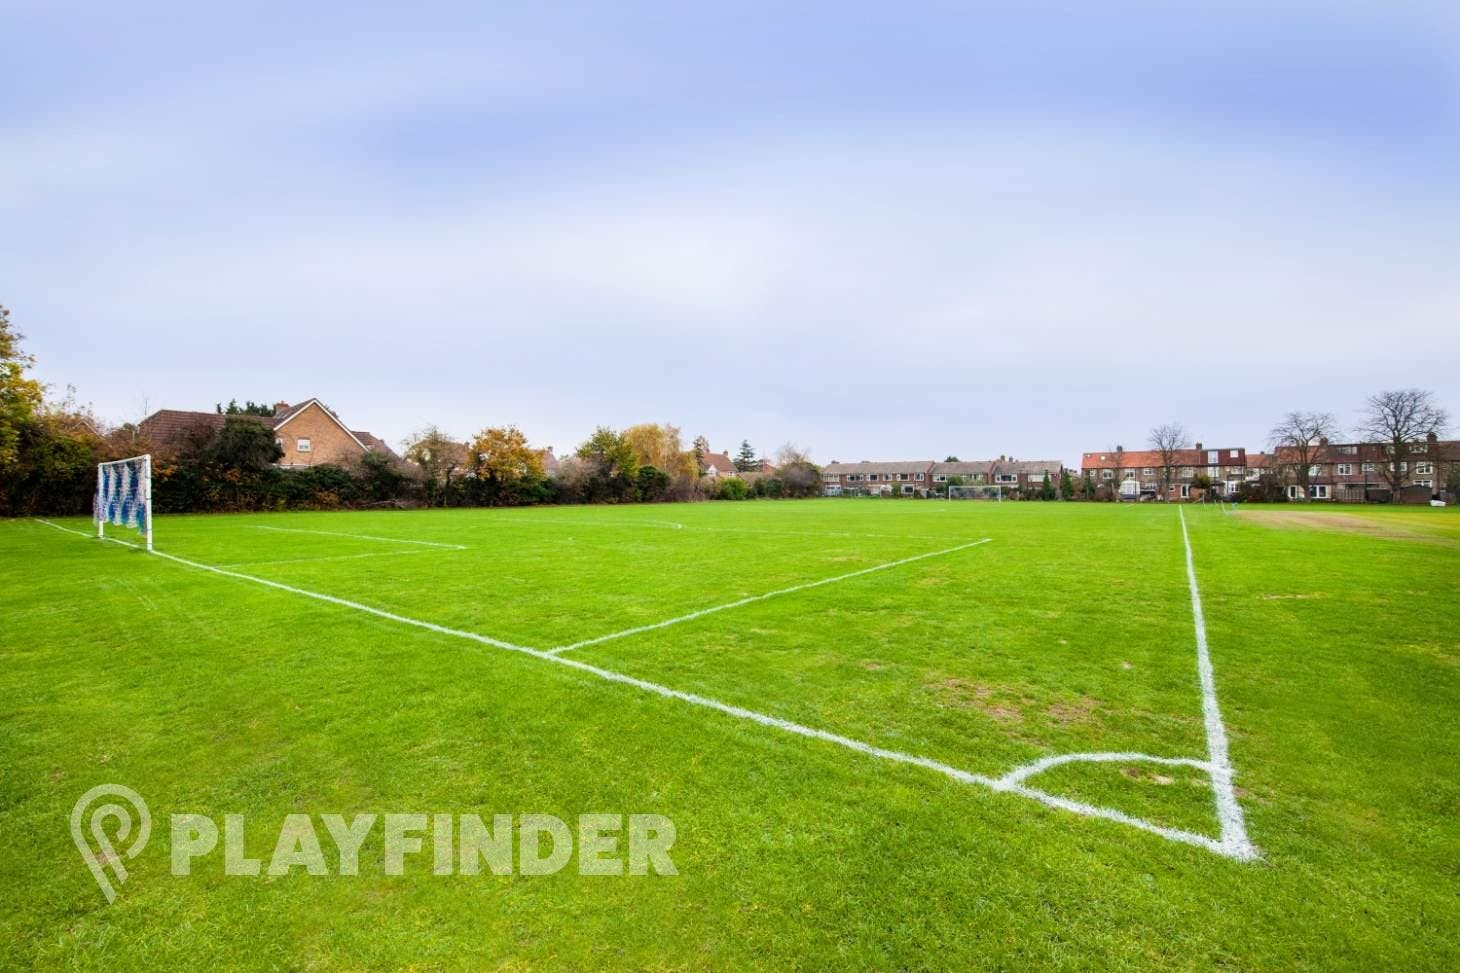 Jubilee Sports Ground, Highams Park 11 a side | Grass football pitch